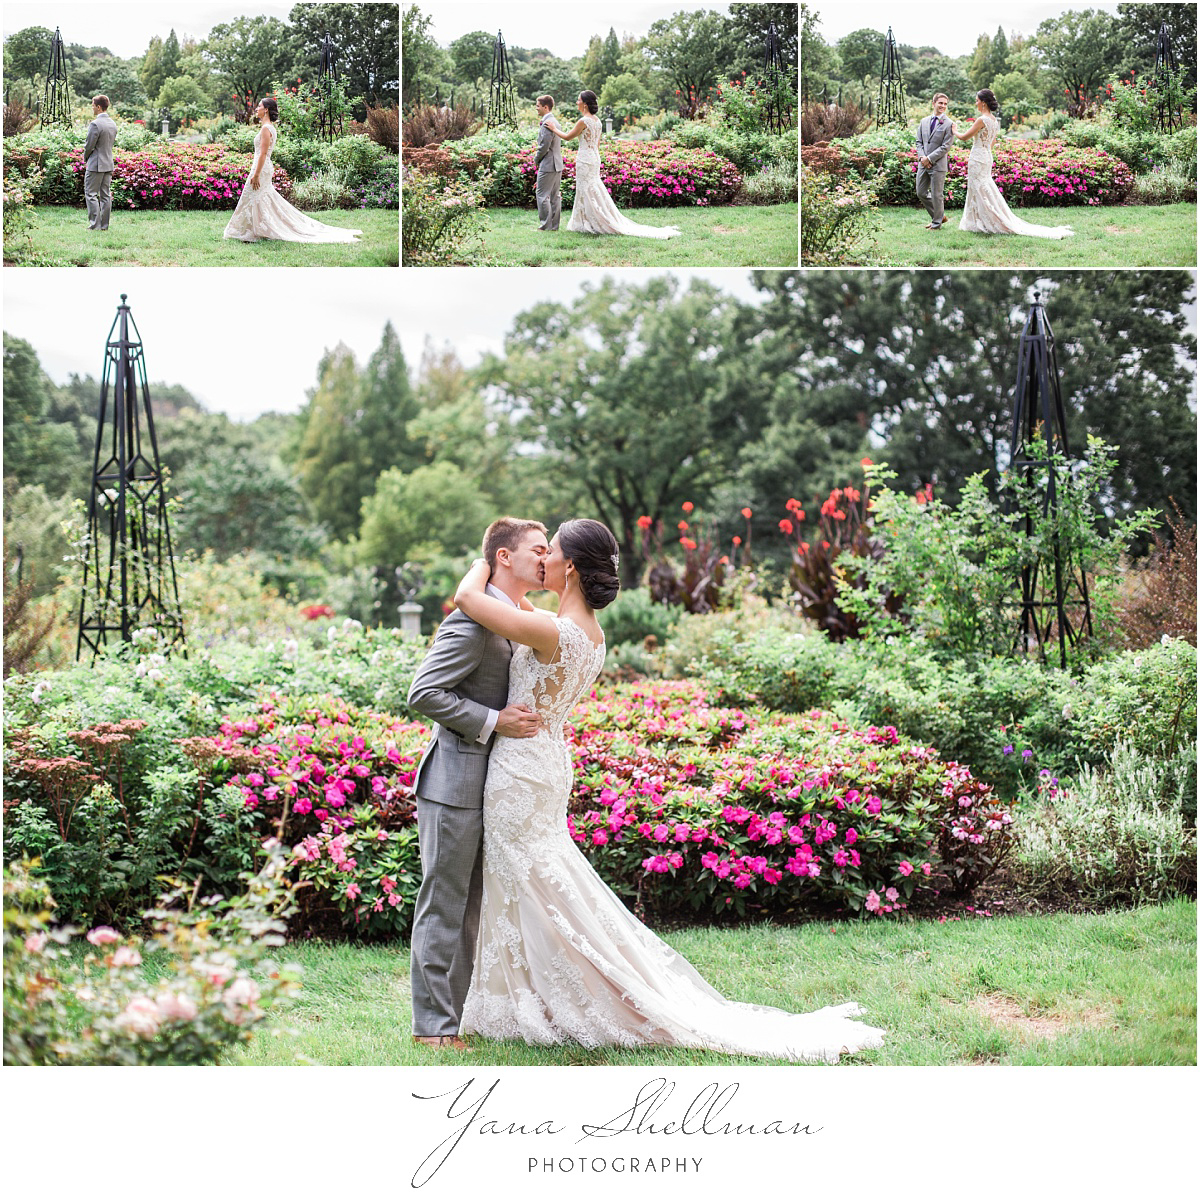 morris-arboretum-wedding-photos-by-cherry-hill-wedding-photographer-kaylalinus-wedding